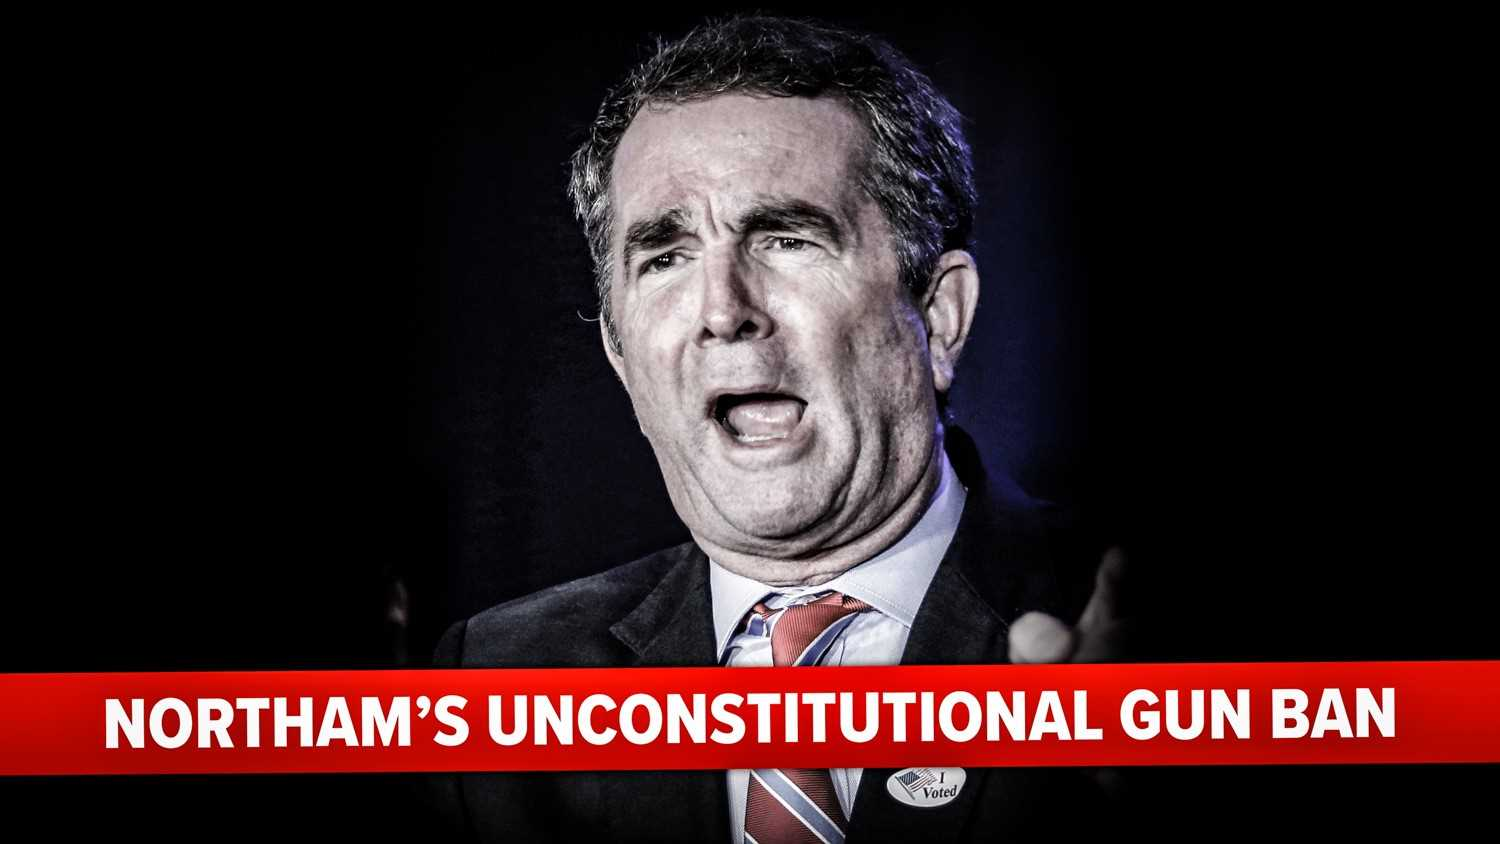 NRA-ILA | No Gov. Northam, Your Gun Ban is NOT Constitutional